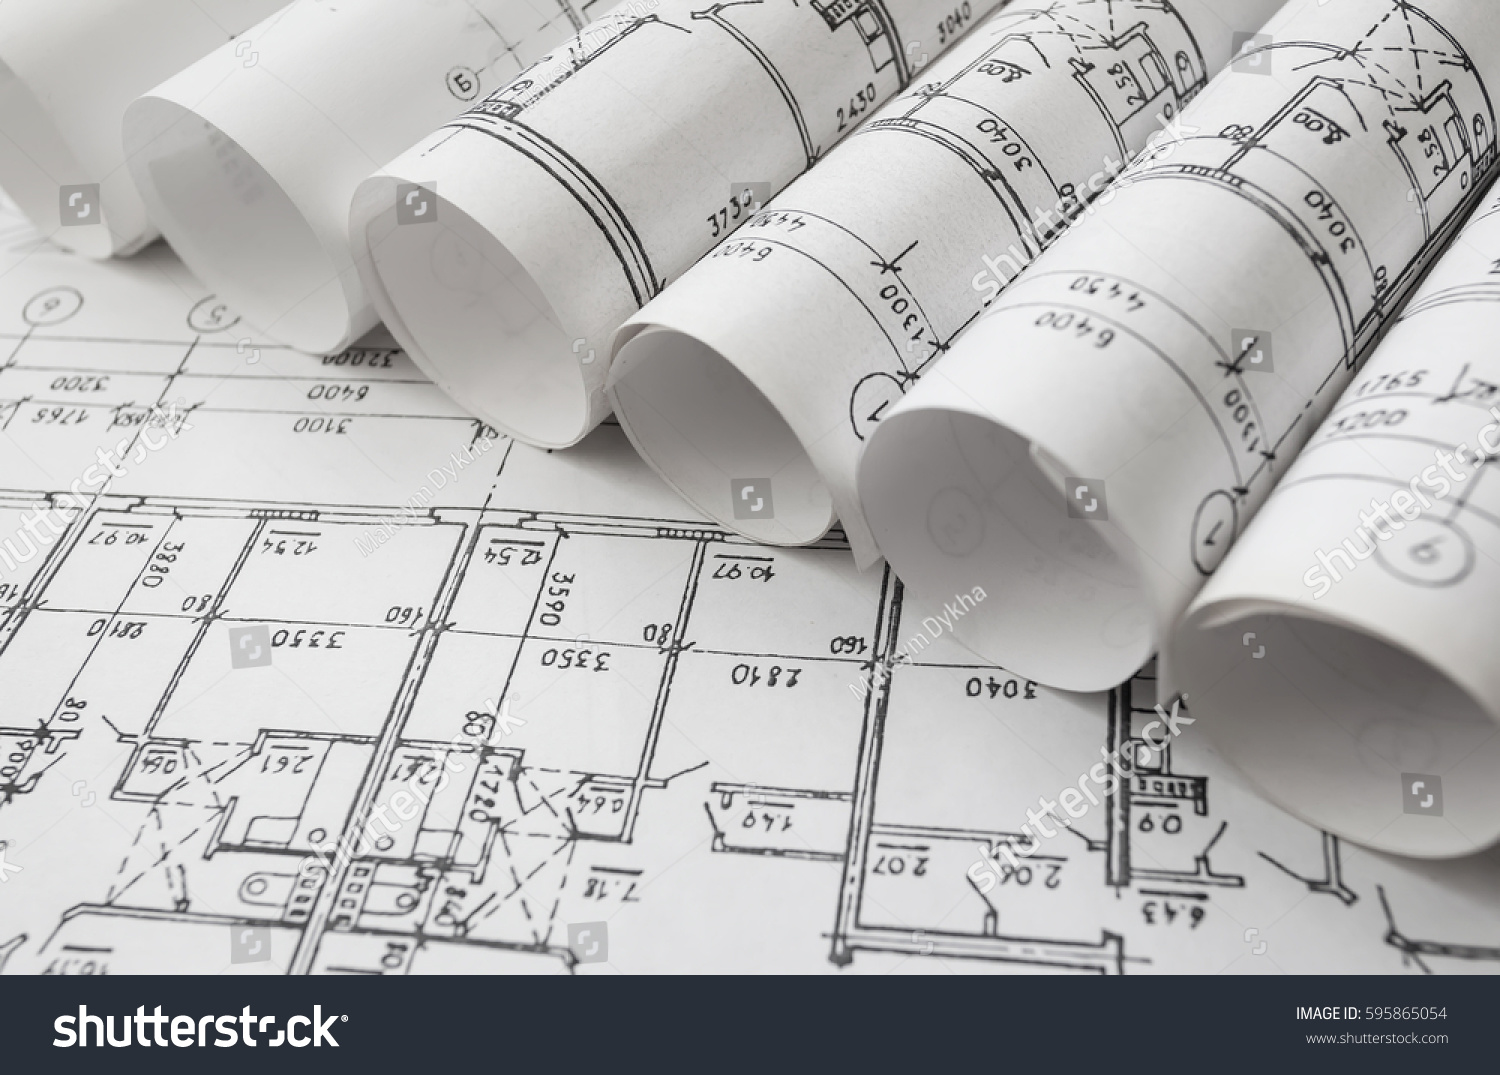 Architect workplace architectural project blueprints blueprint architectural project blueprints blueprint rolls on wooden desk table construction malvernweather Image collections